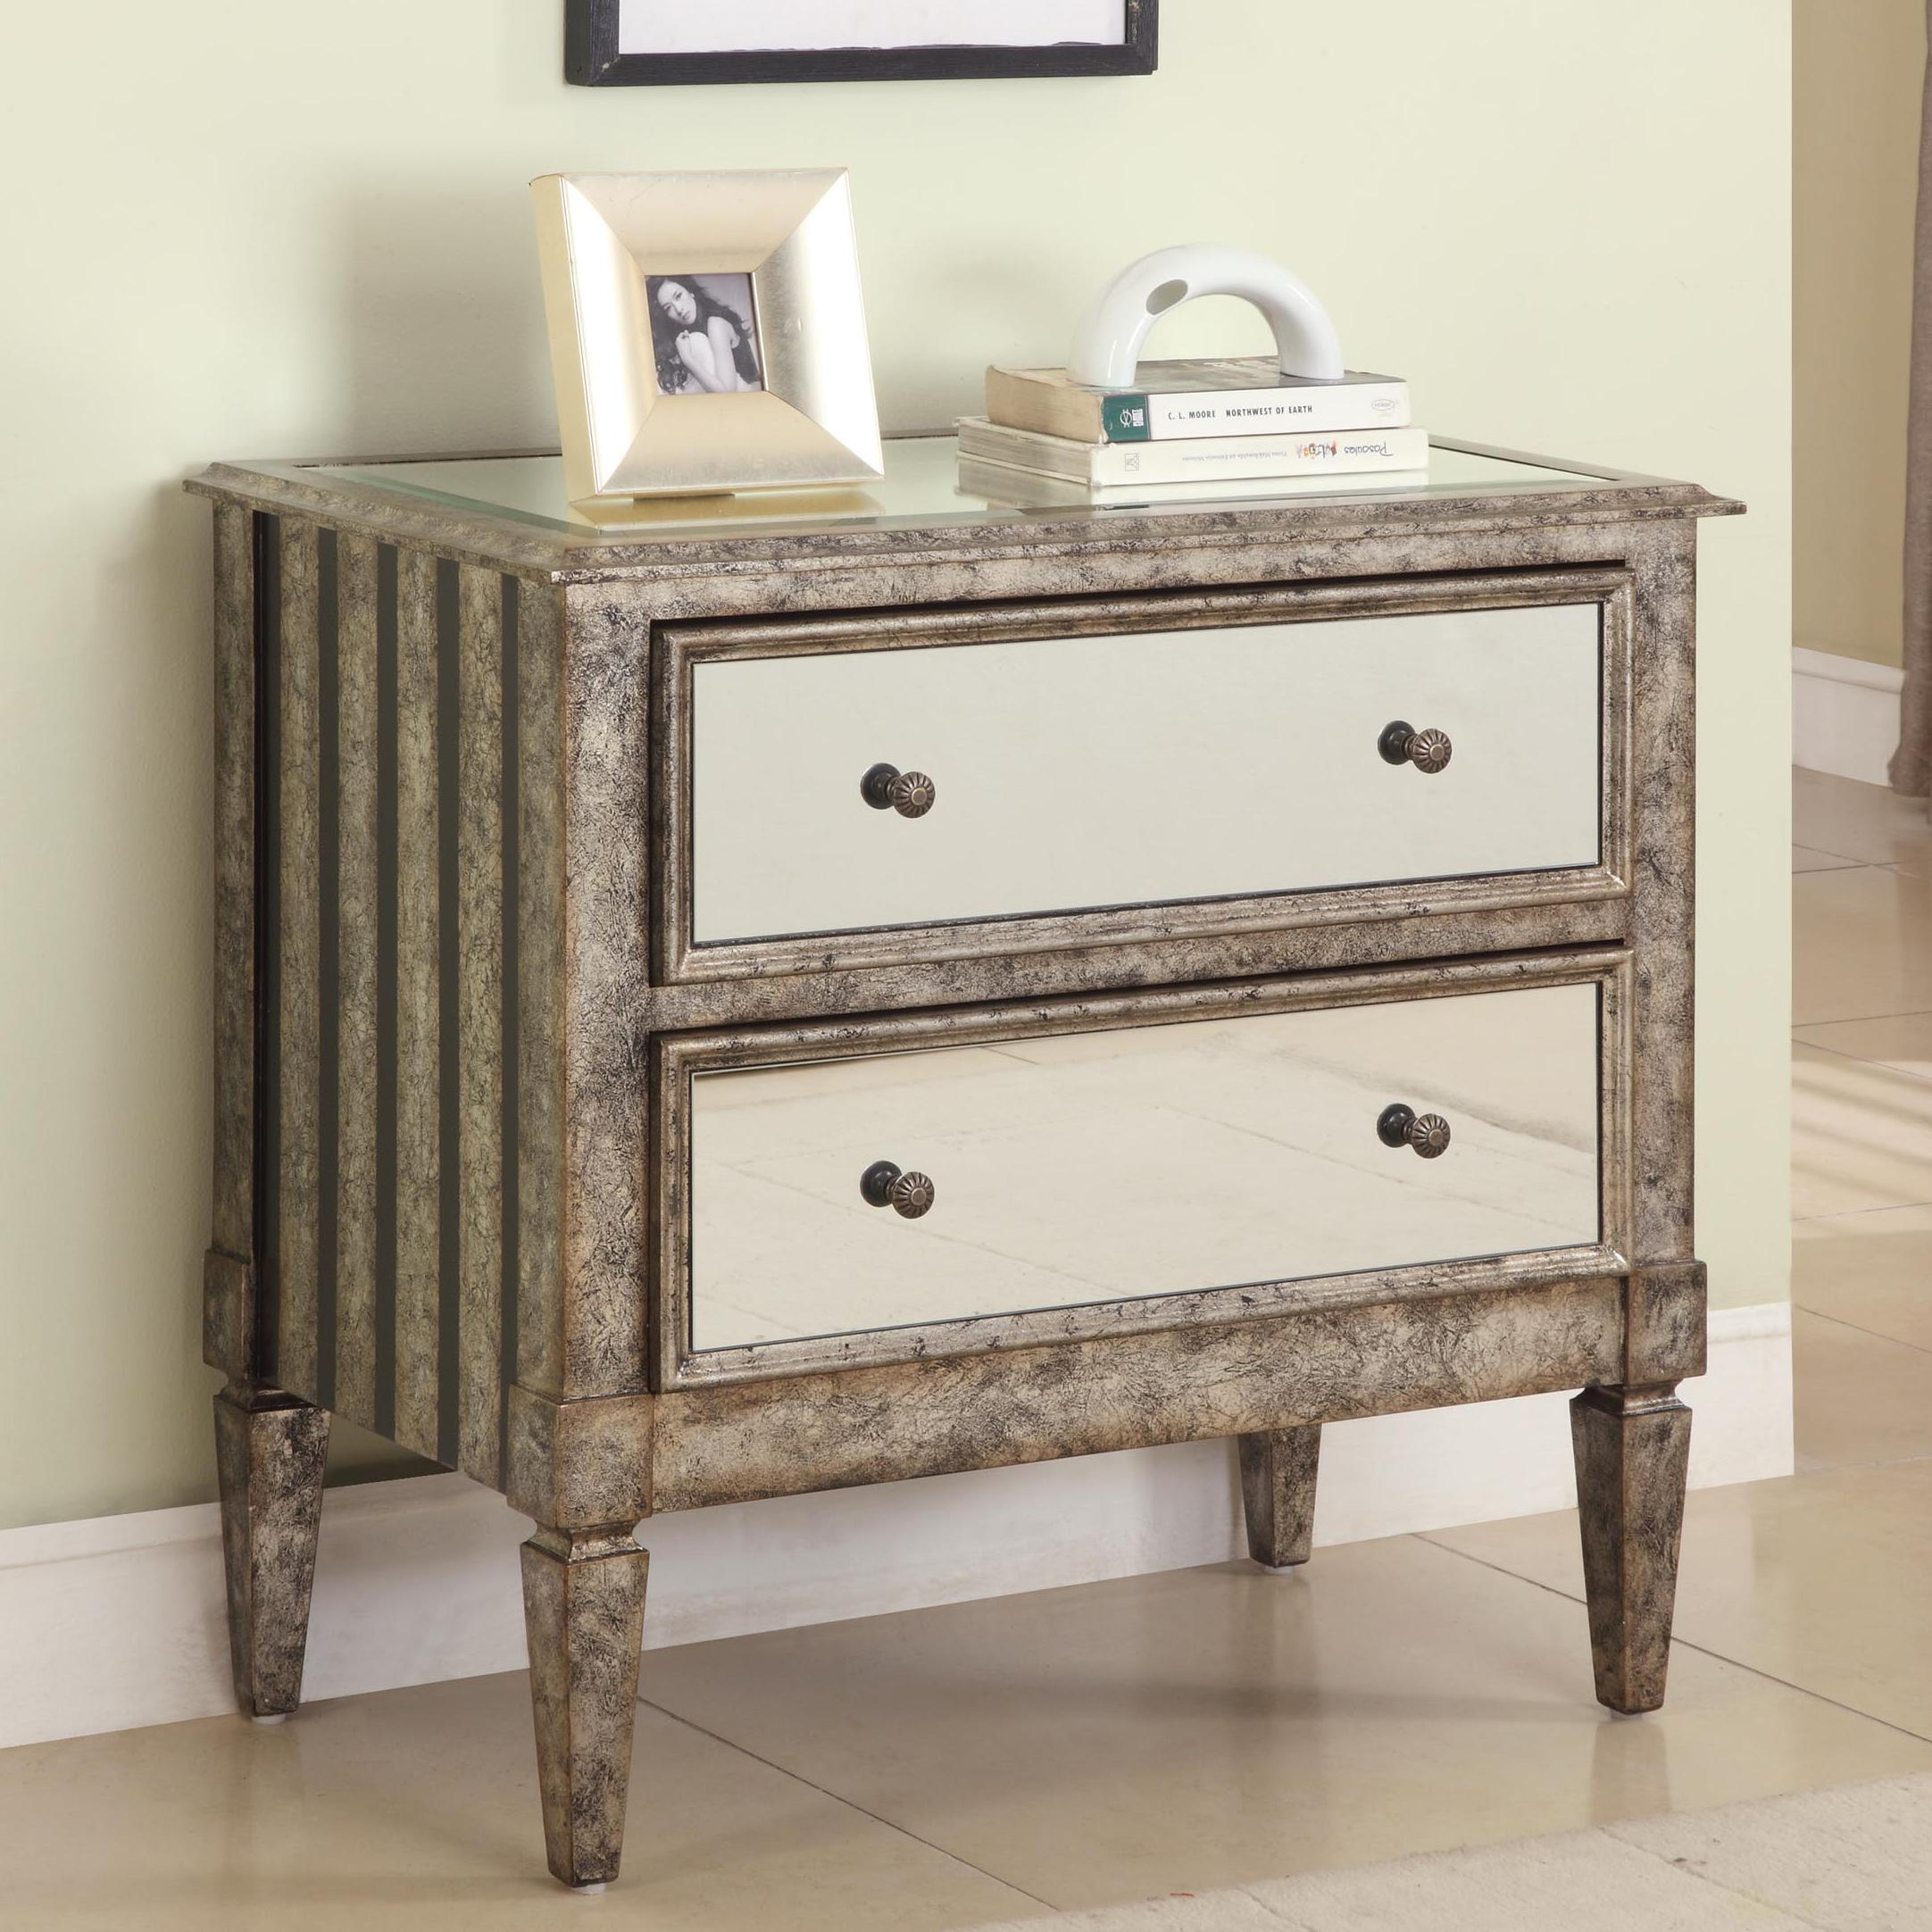 Powell Accents 2-Drawer Mirrored Chest - Item Number: 709-331